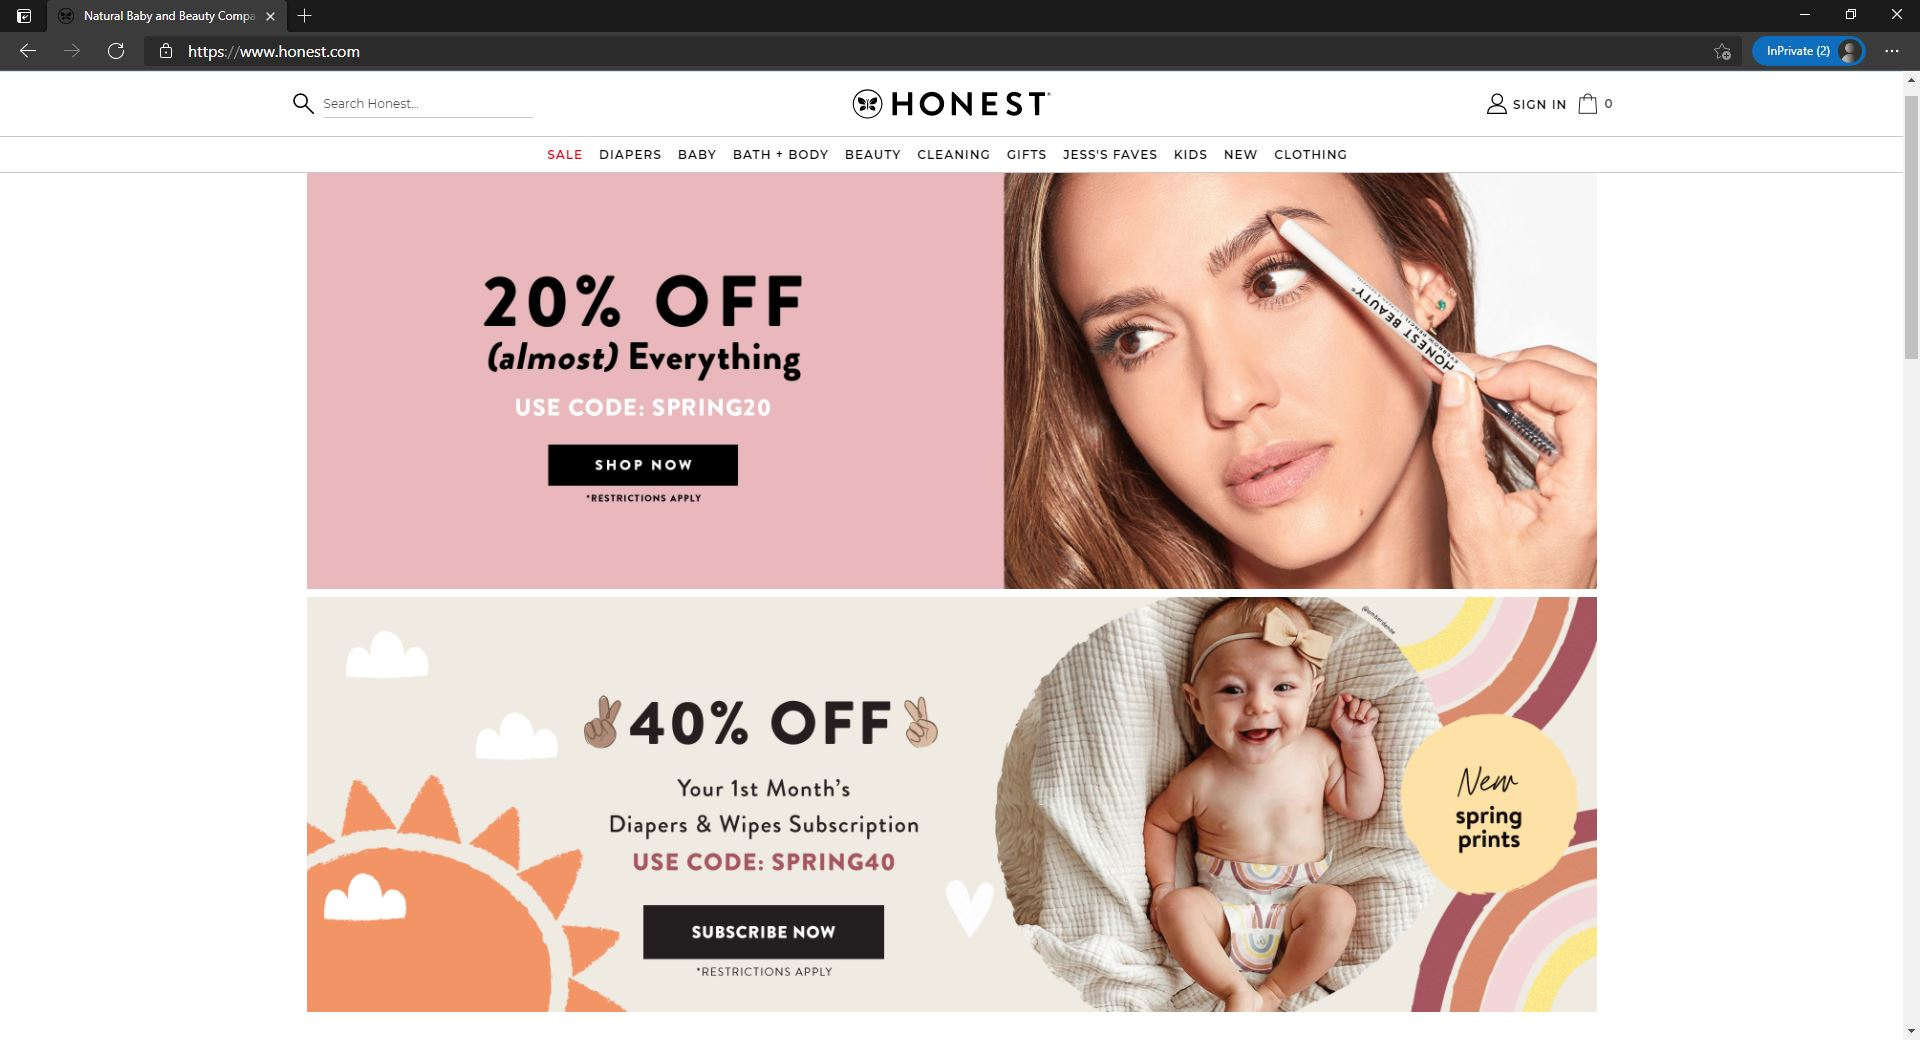 The Honest Company website homepage